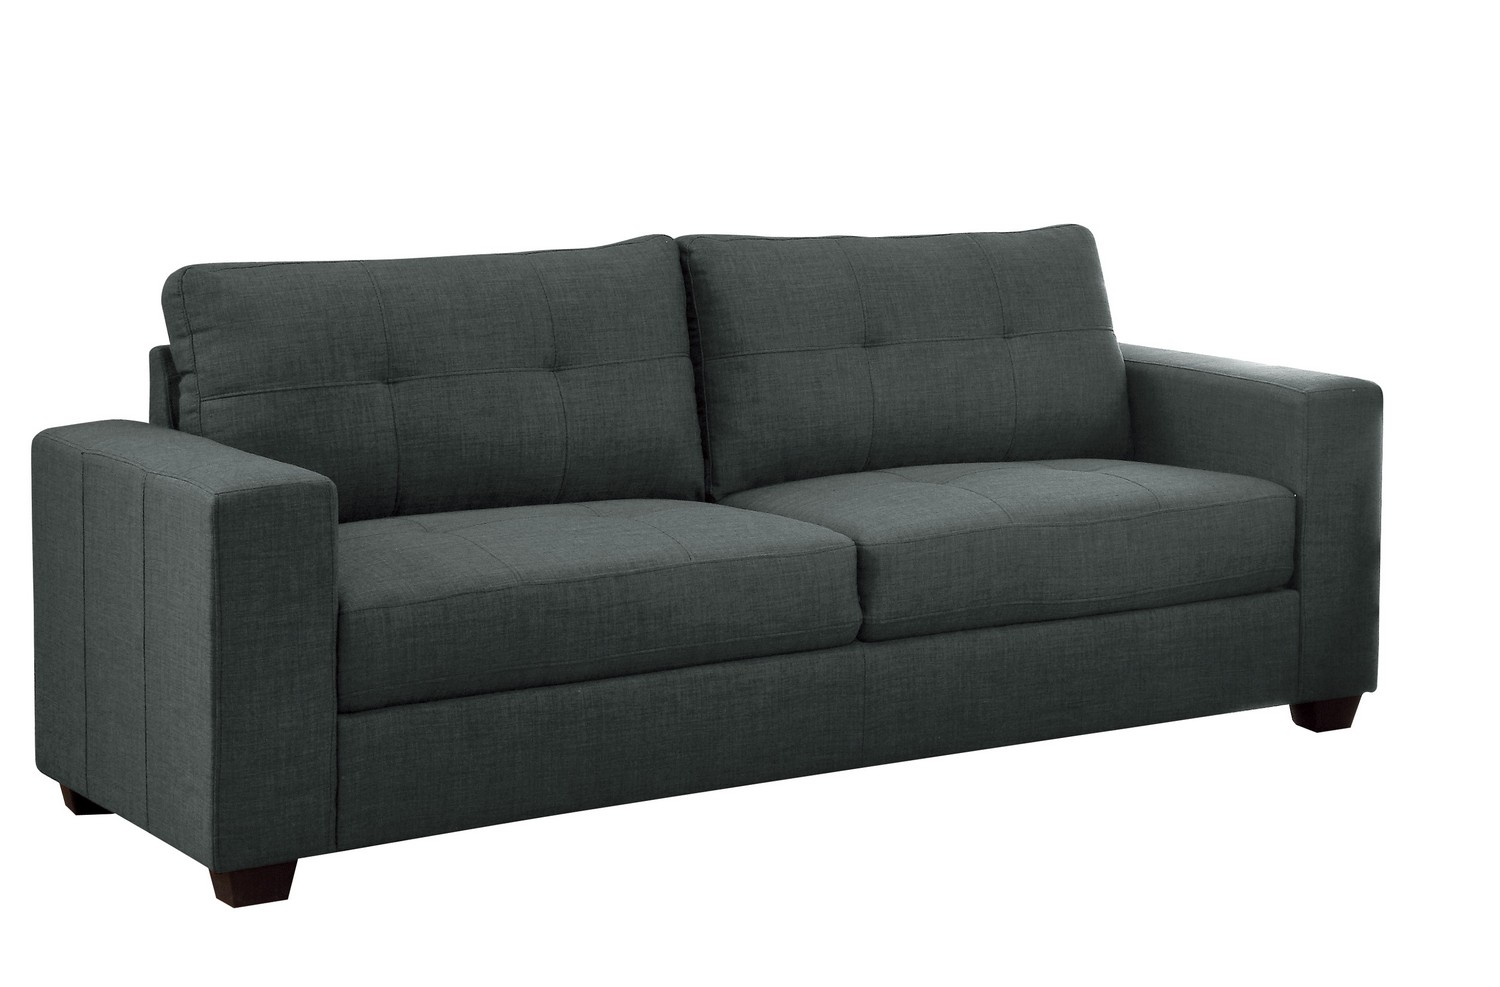 Homelegance Ashmont Sofa - Polyester - Dark Grey